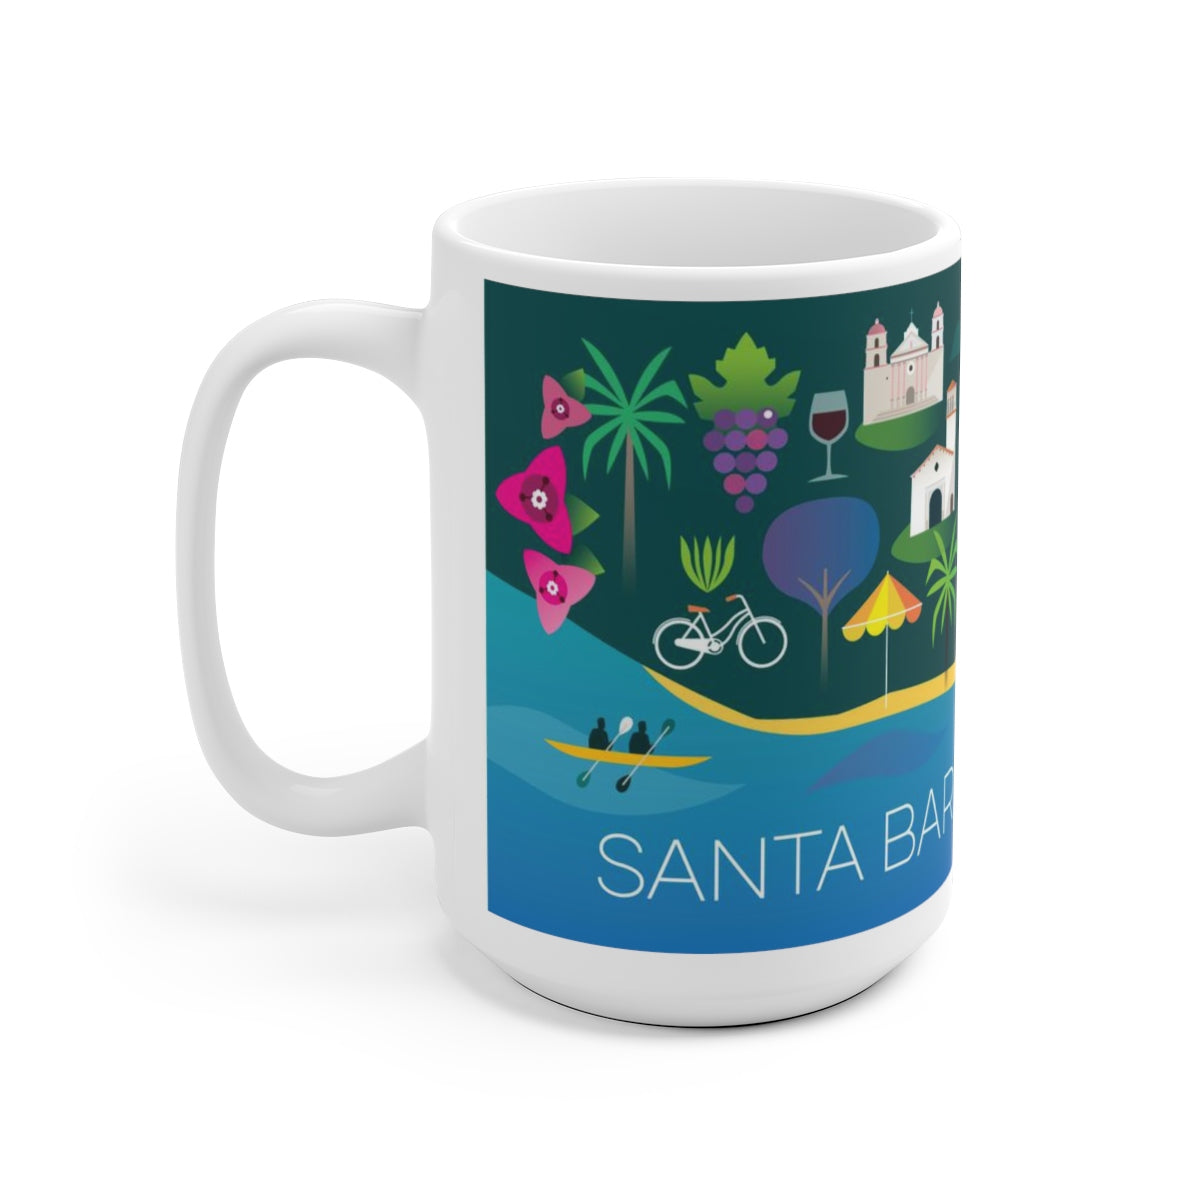 SANTA BARBARA 15 OZ CERAMIC MUG